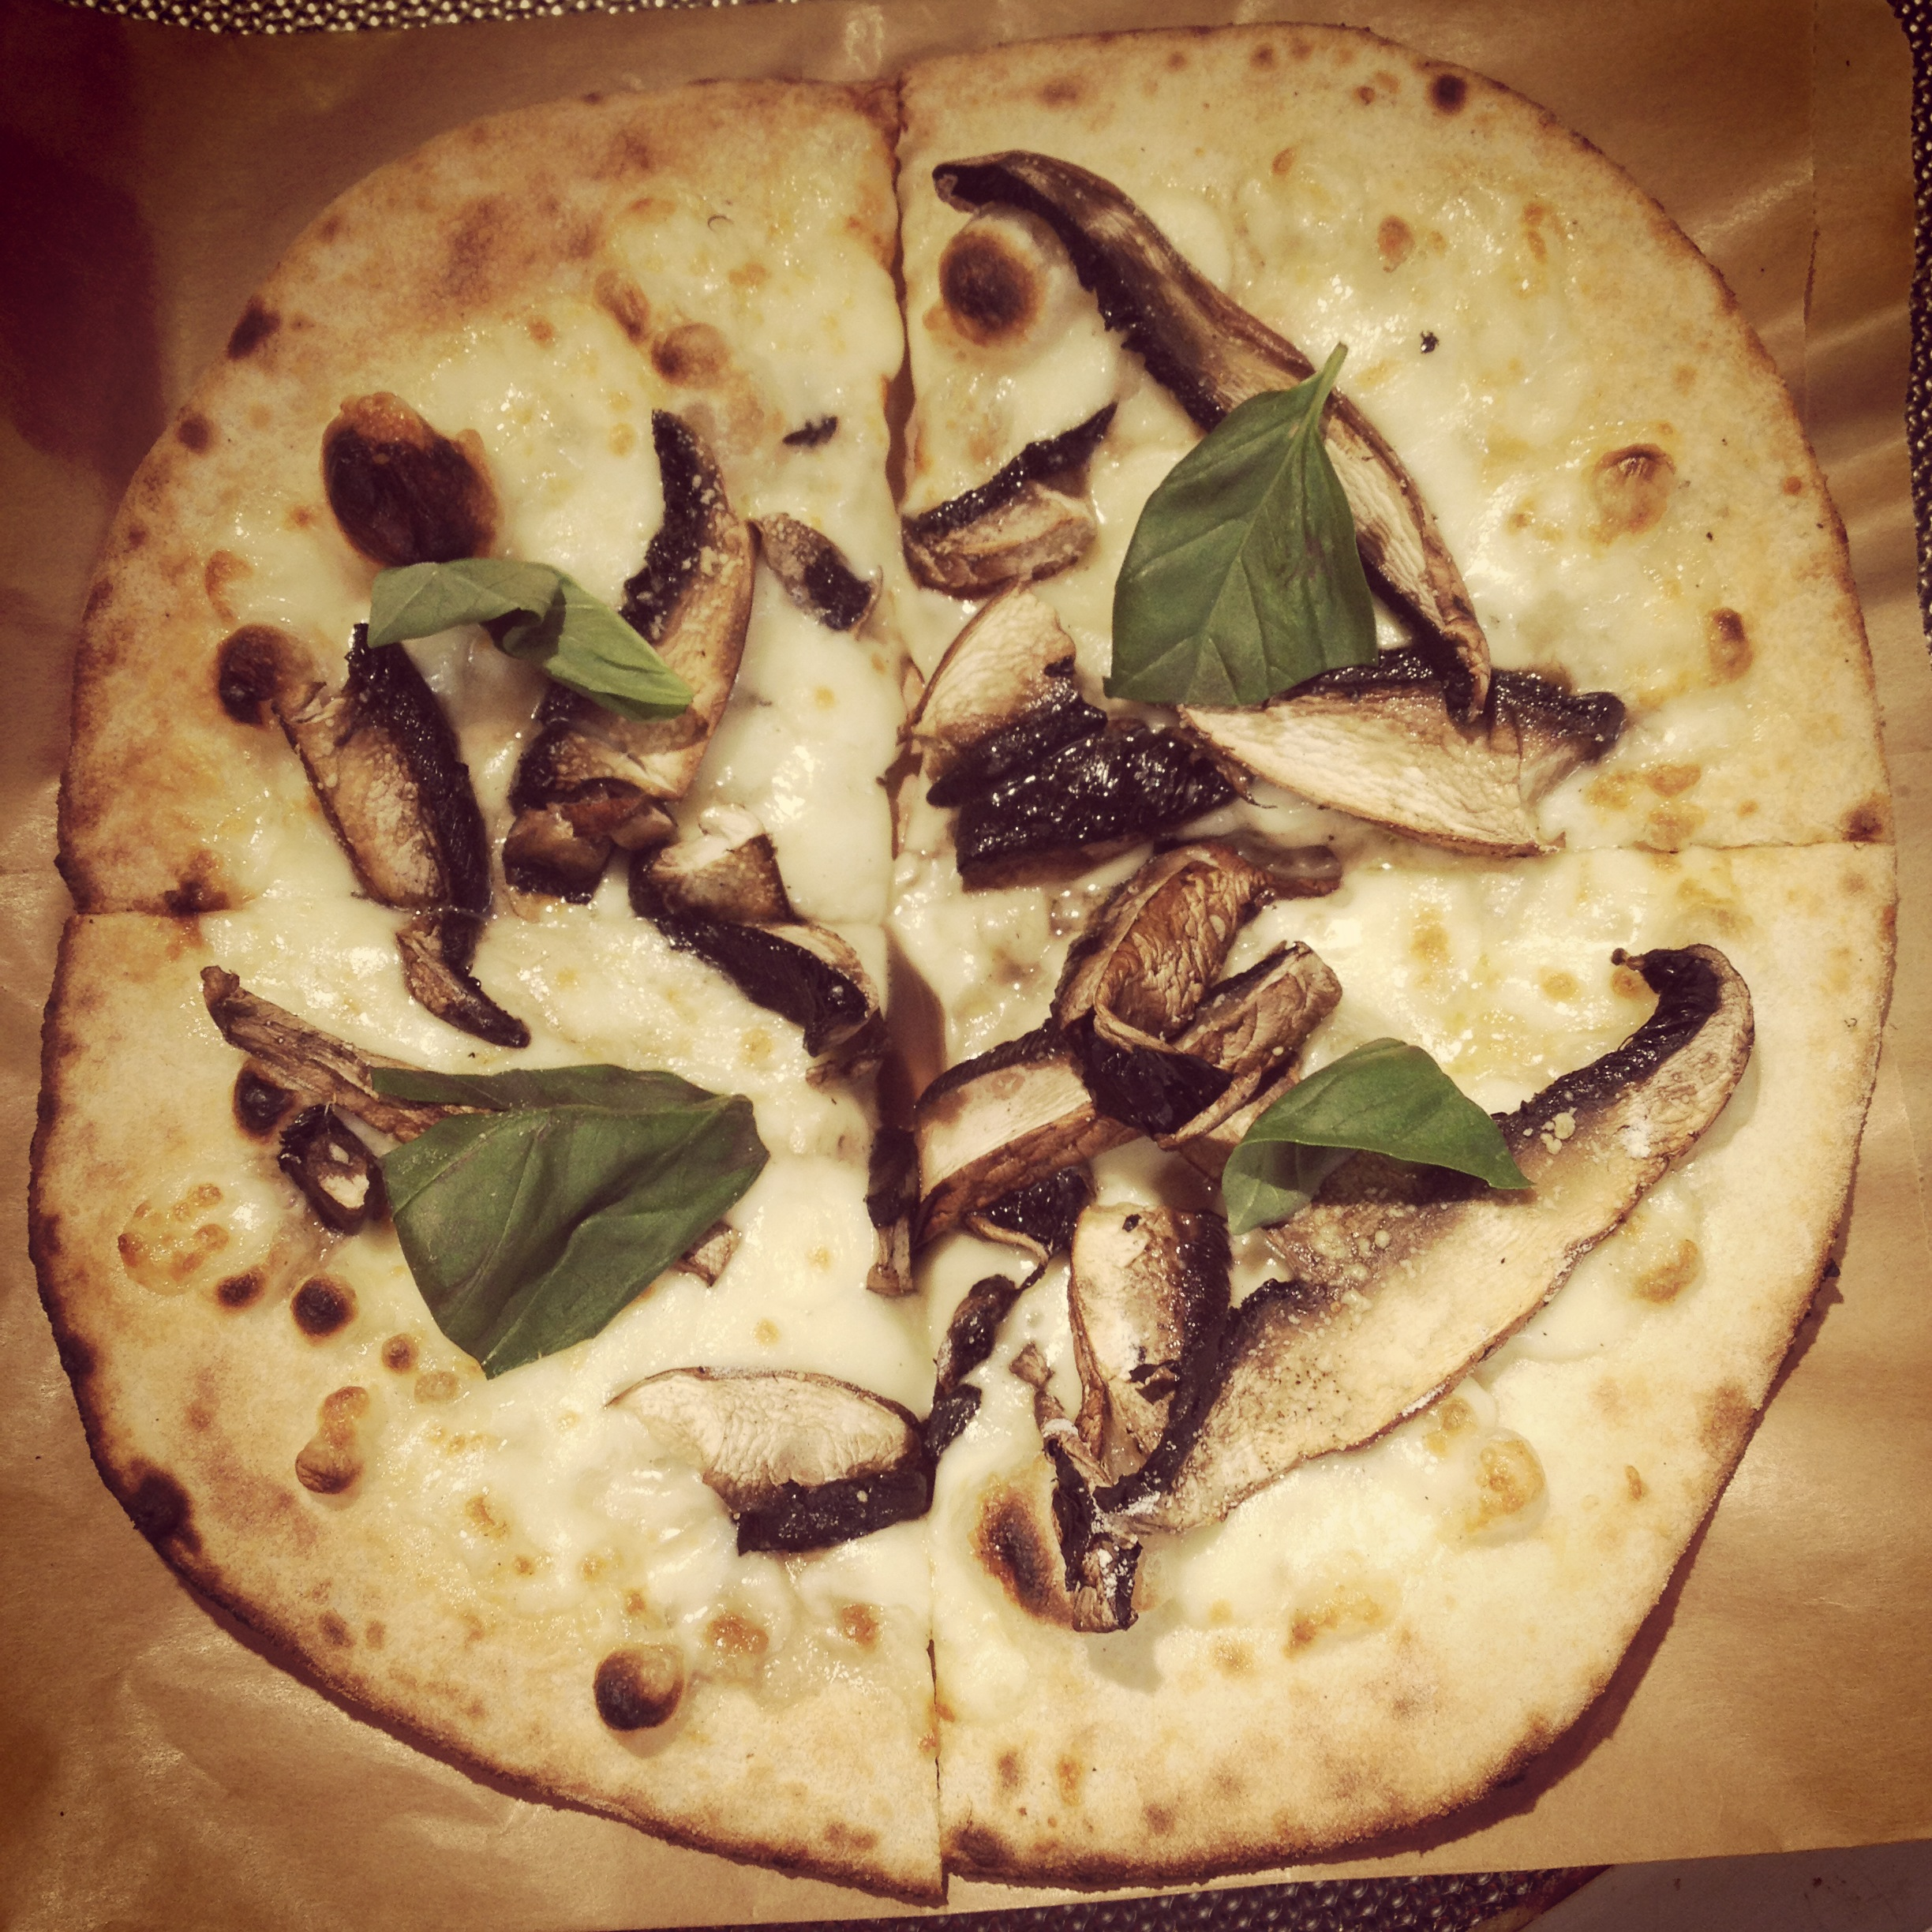 funghi, portobello mushrooms with truffle oil - a hit on the night!